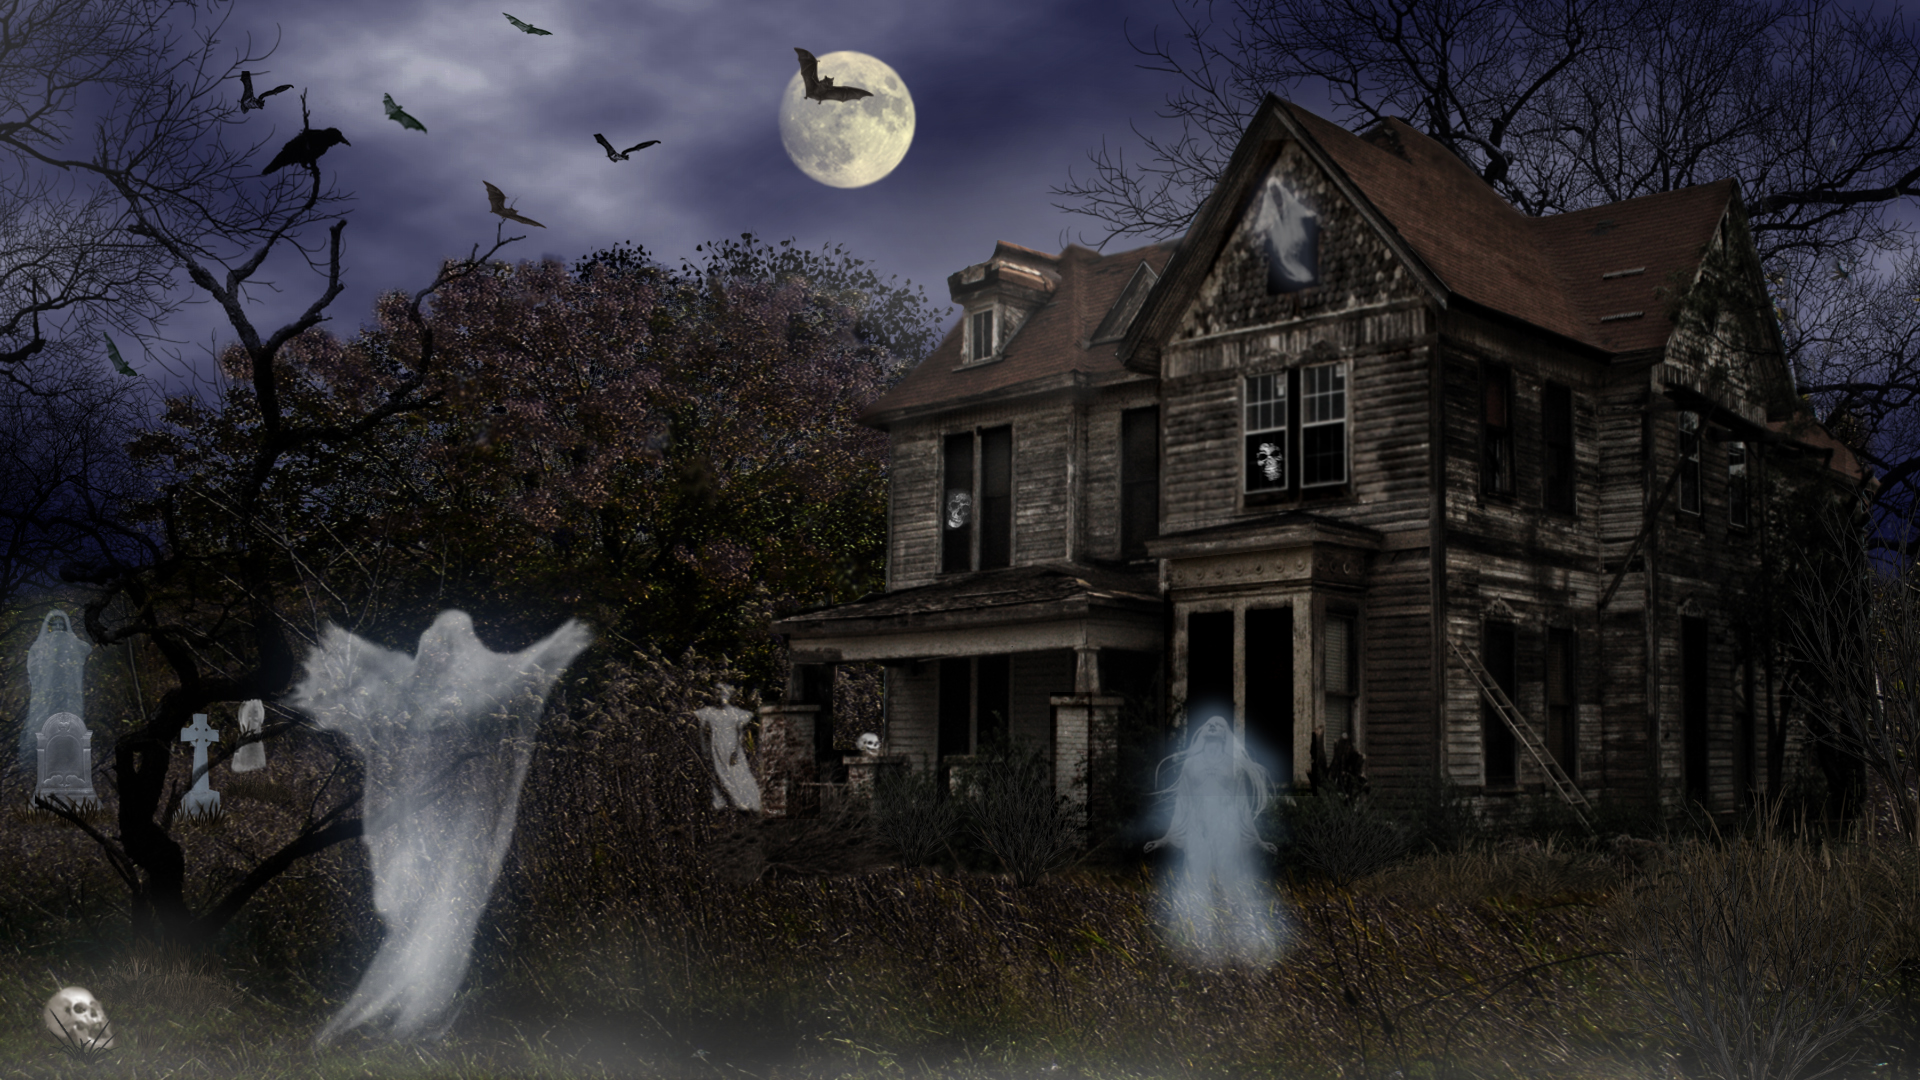 Screensavers Explore Haunted Mortuary Halloween wallpapers HD 1920x1080